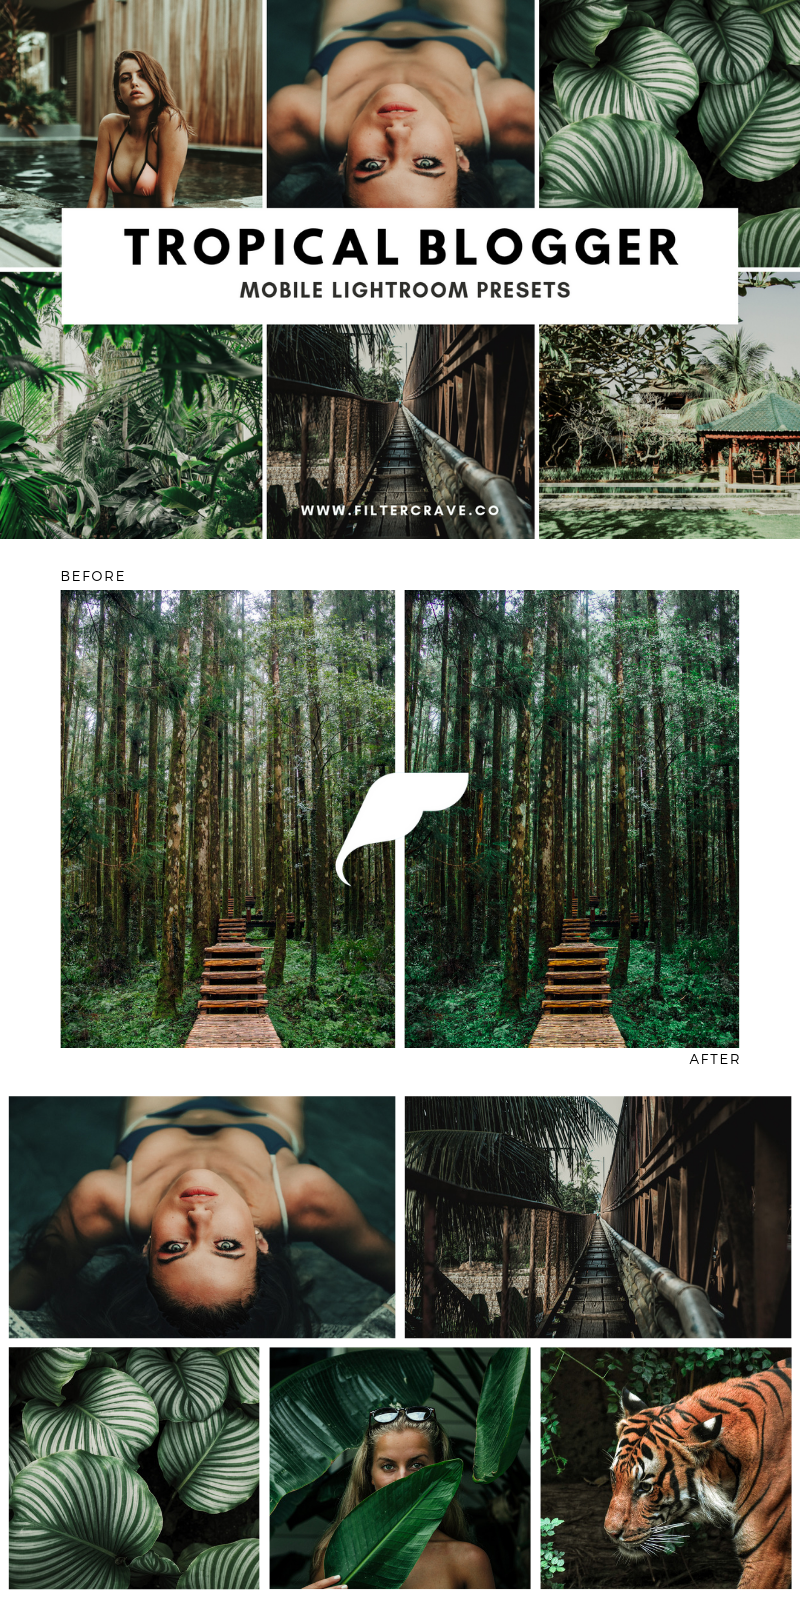 Tropical Blogger Mobile Lightroom Presets | Filtercrave.png